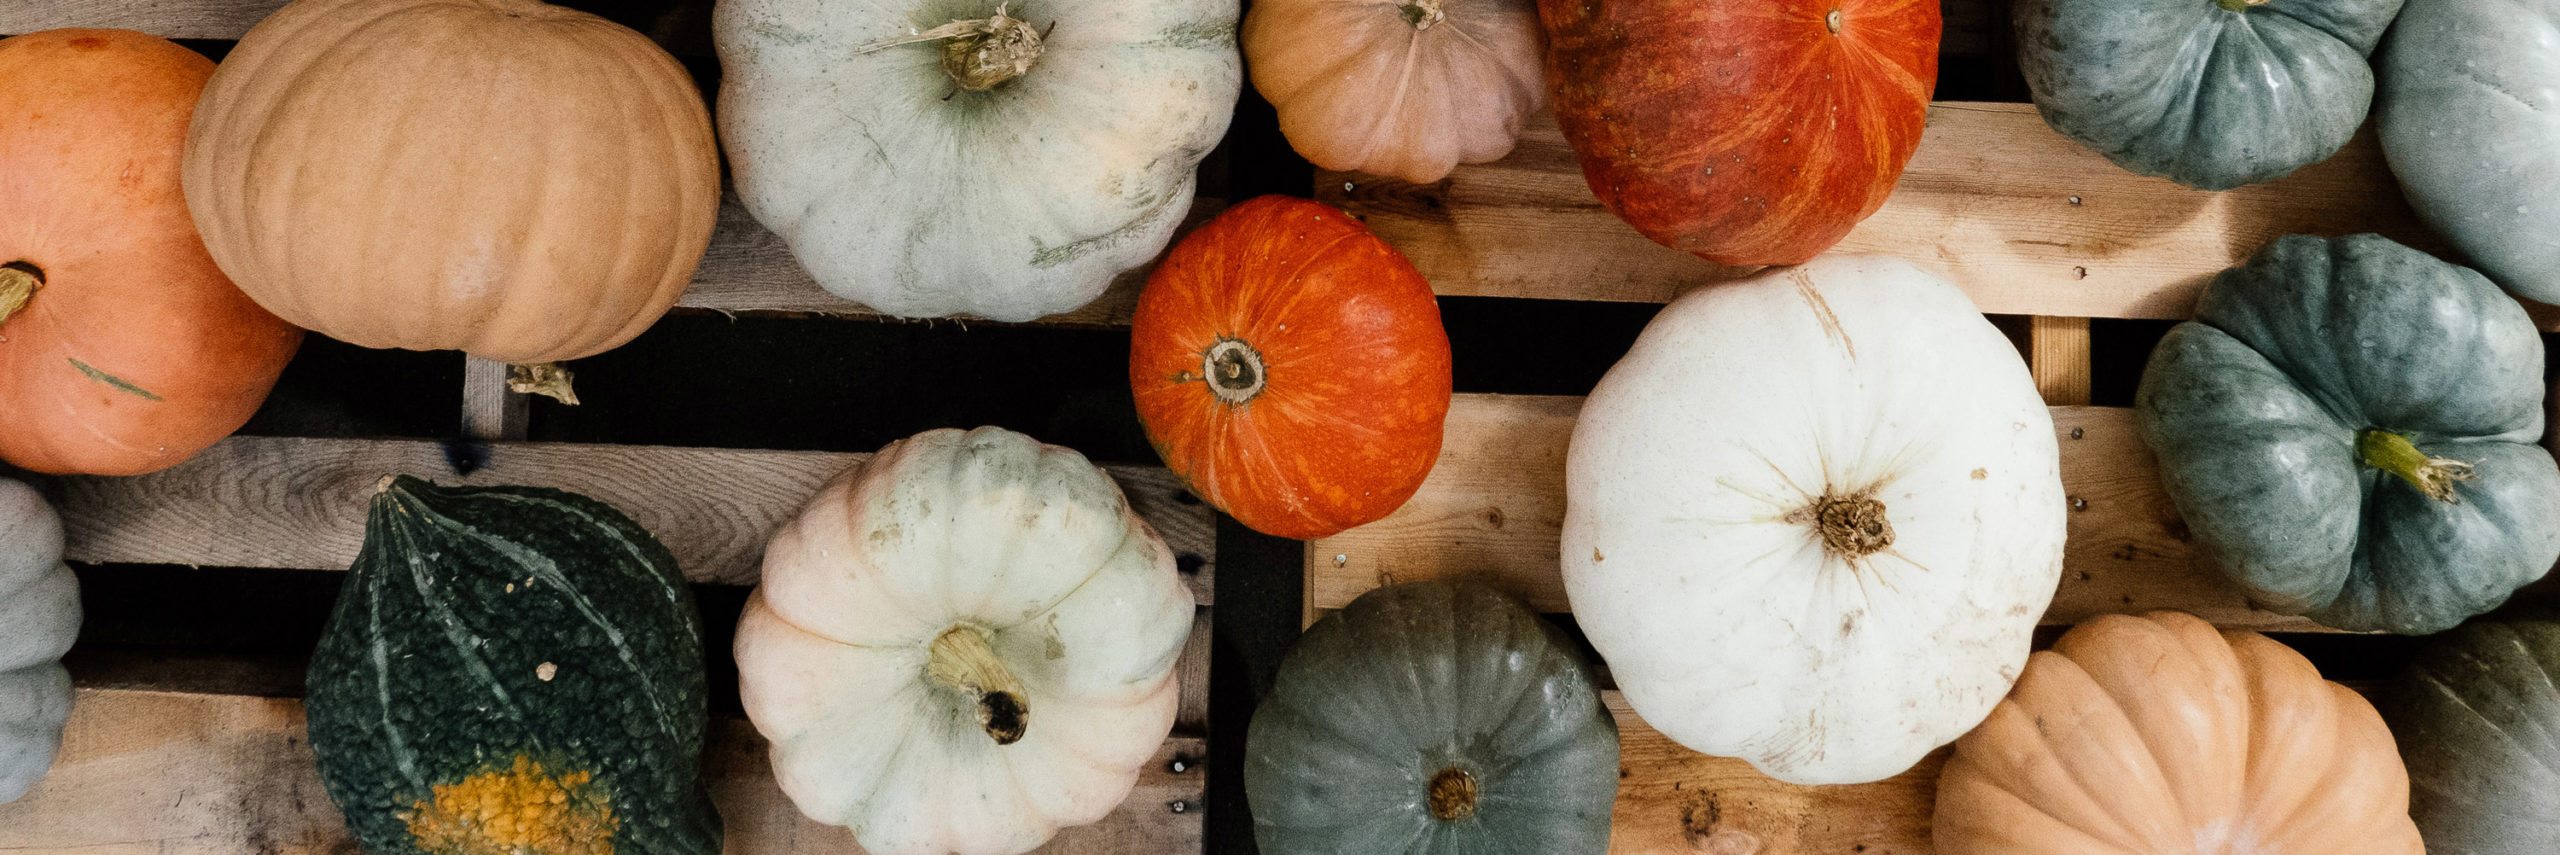 Various shapes and colors of pumpkins